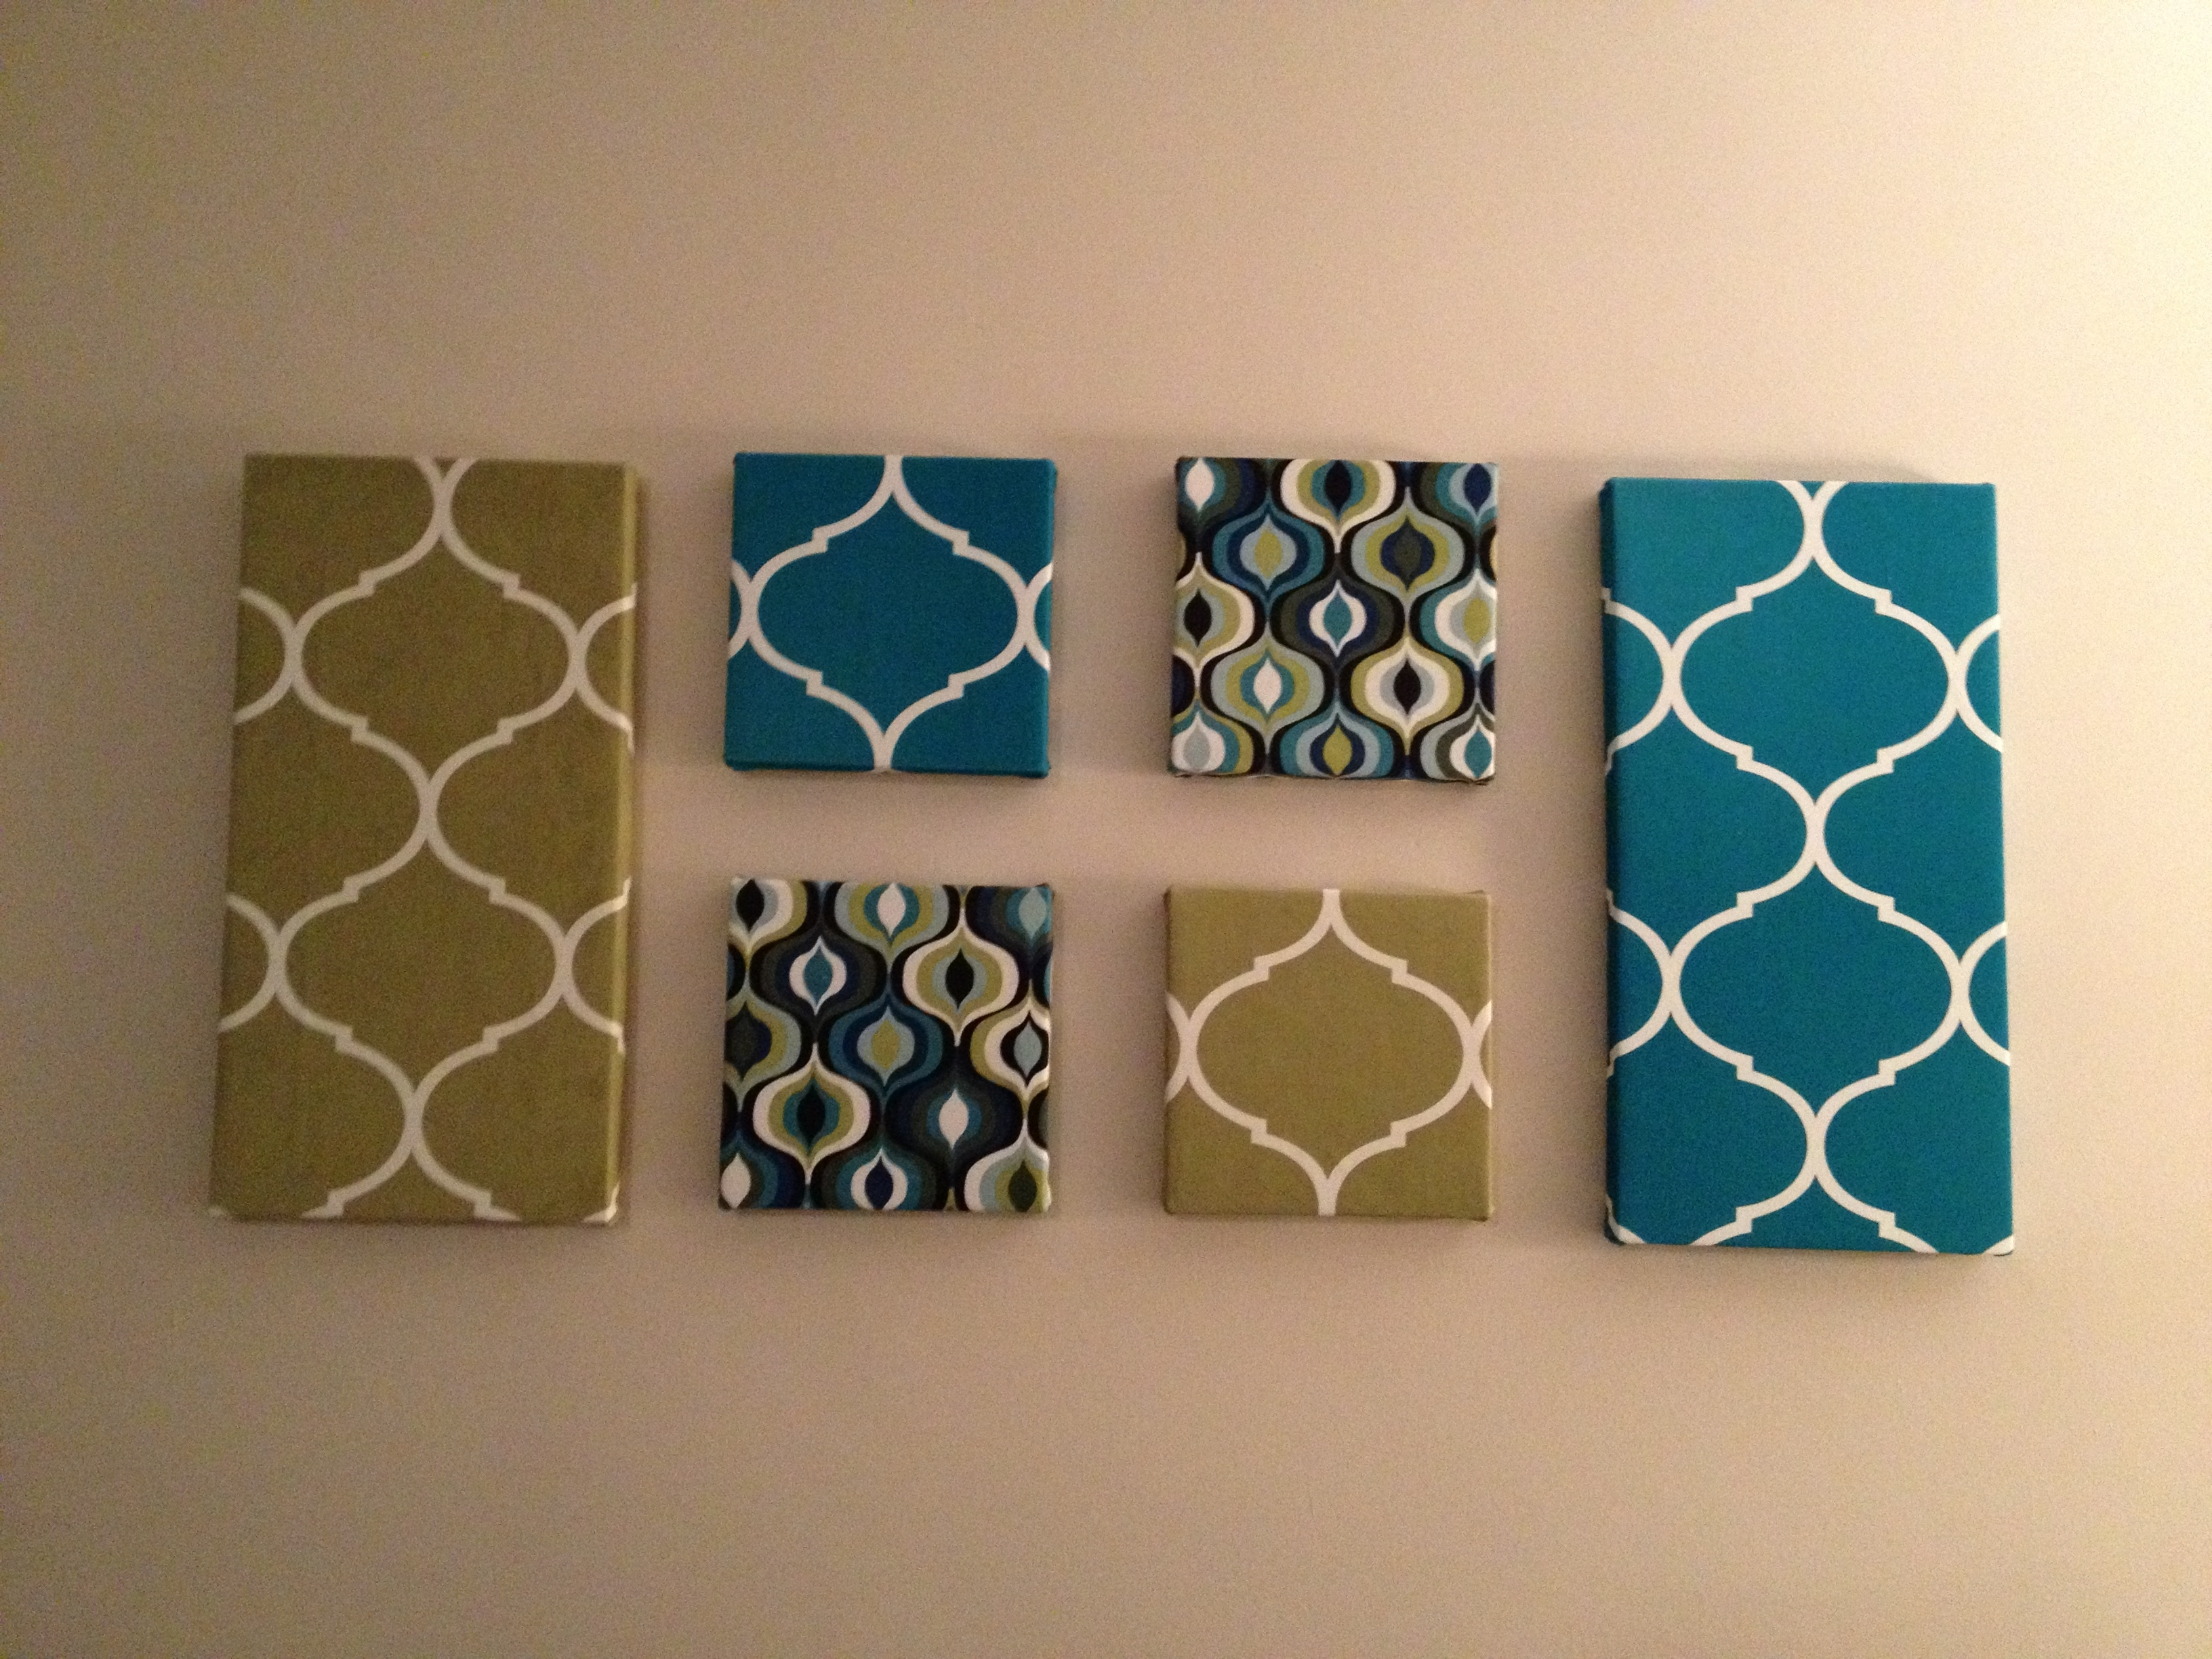 Wall Art: Fabric Covered Canvases | Candy And Her Cupcakes In Most Current Fabric For Canvas Wall Art (View 1 of 15)